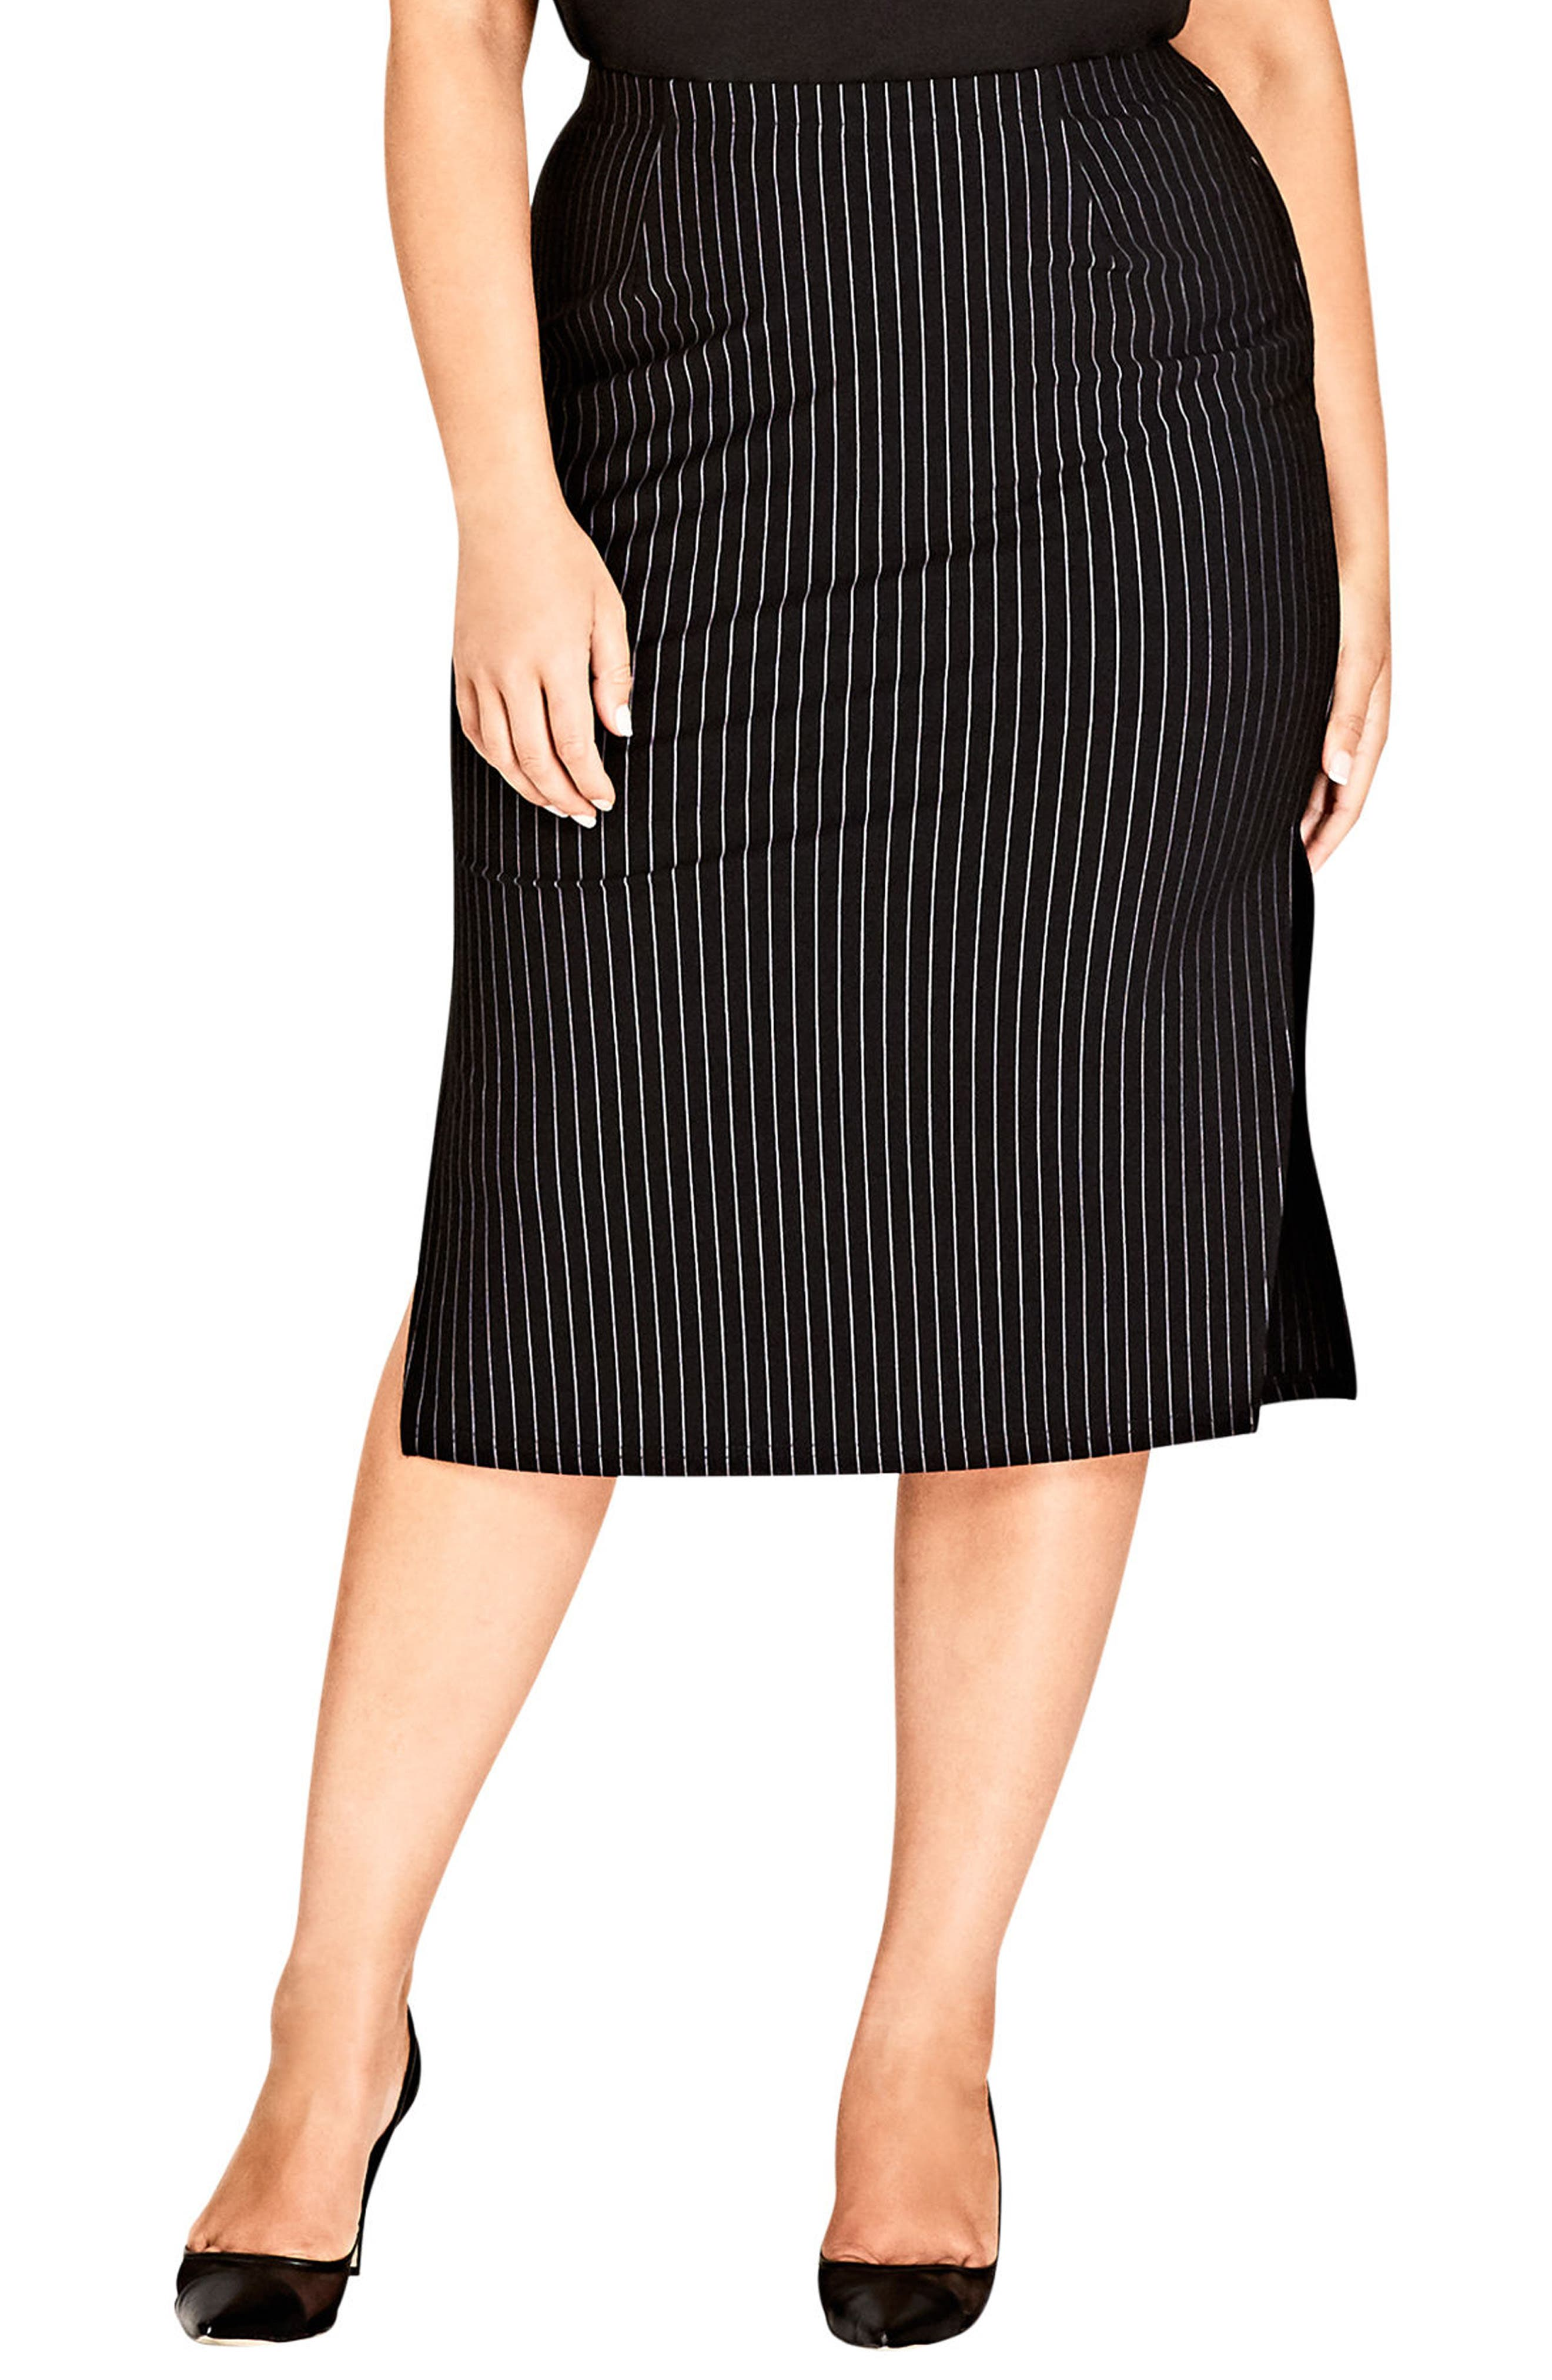 Chic City On Point Pencil skirt,                             Main thumbnail 1, color,                             Pin Stripe